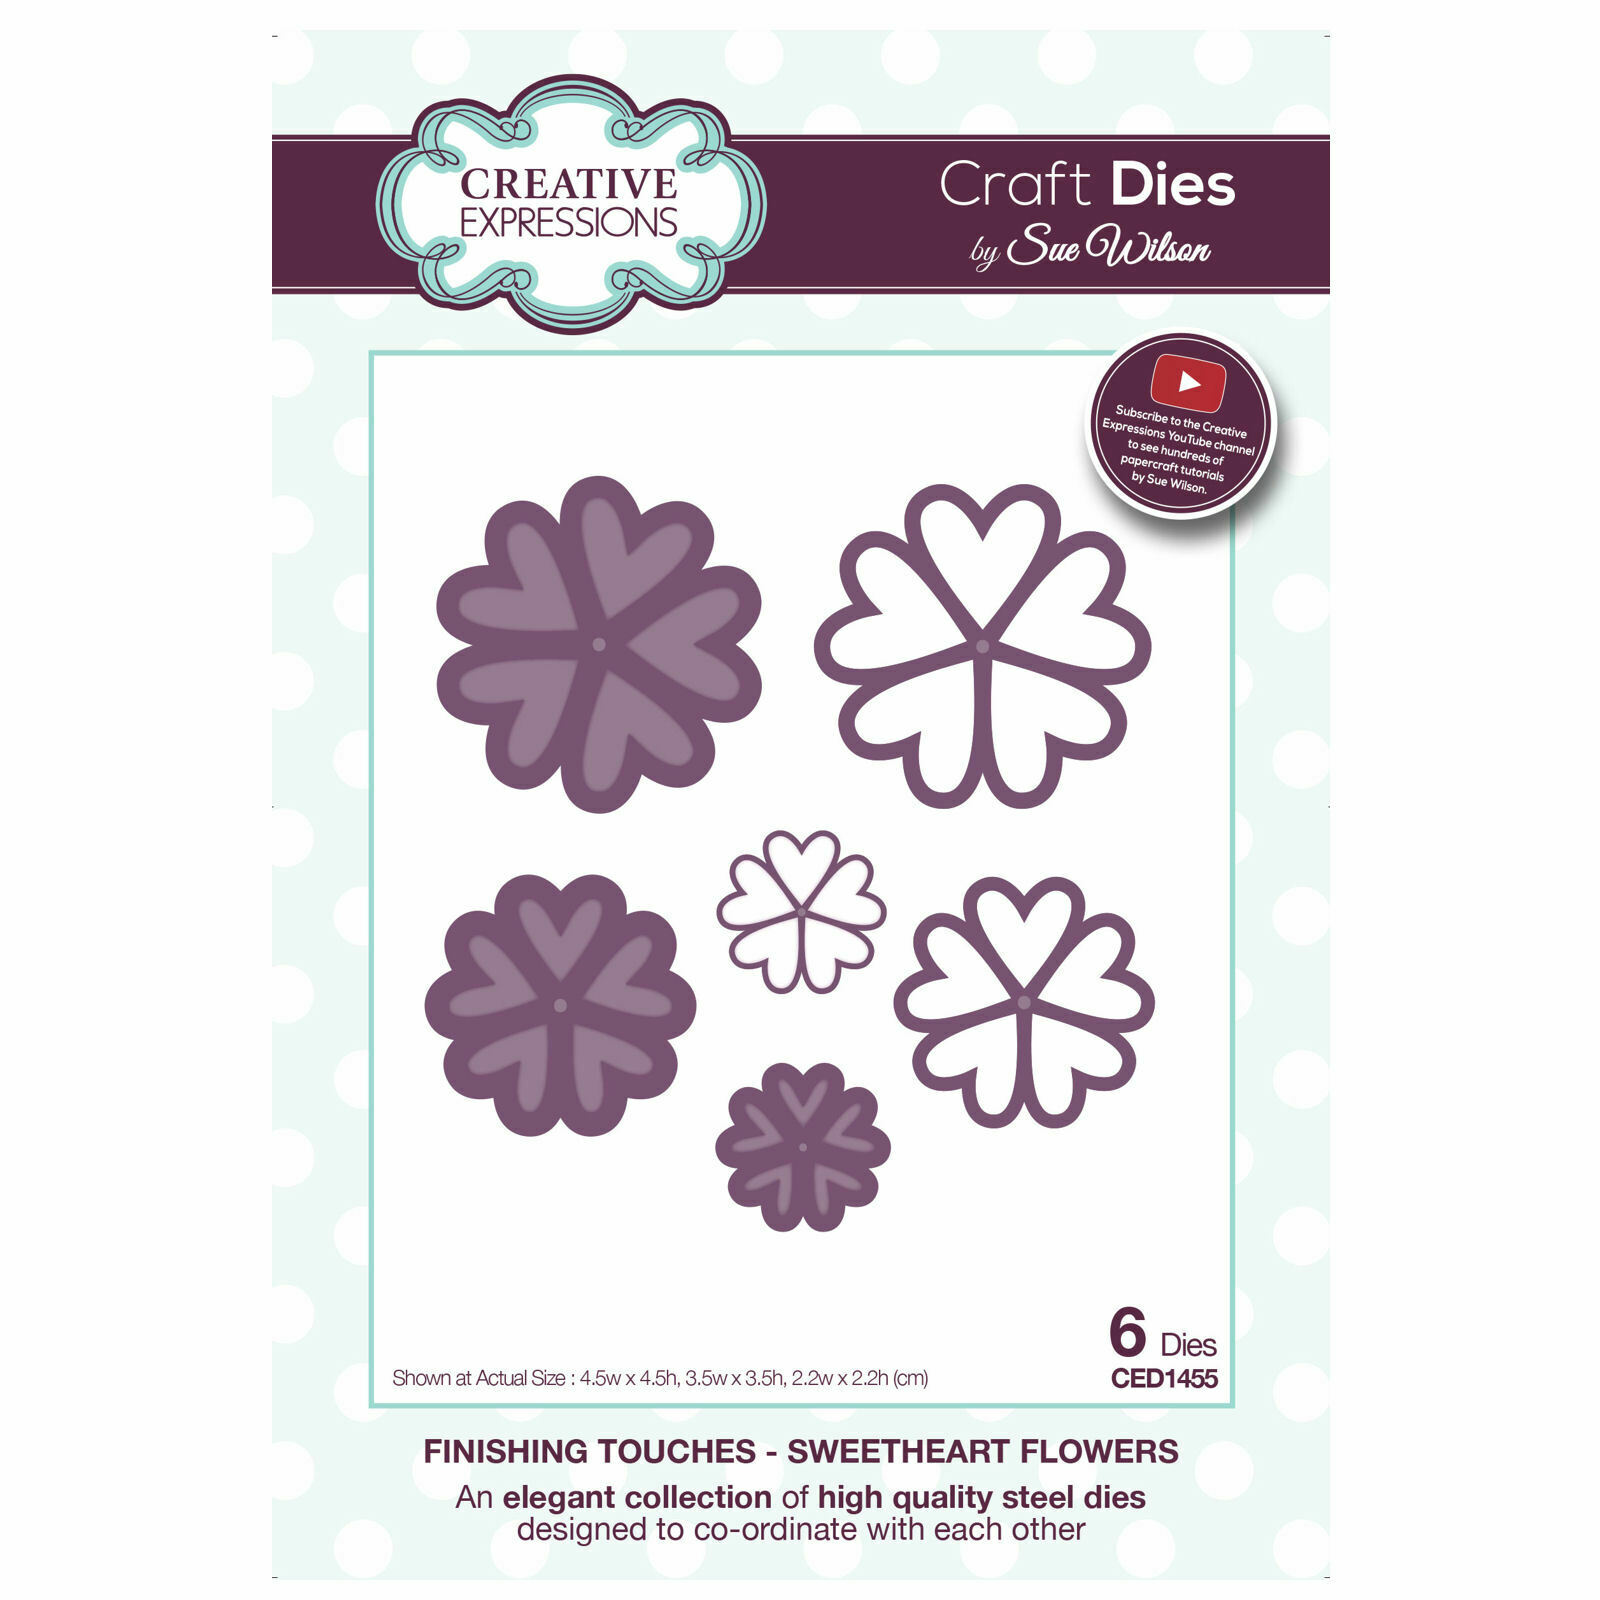 Sue Wilson FINISHING TOUCHES COLLECTION Sweatheart Flowers Die CED1455 6 Dies